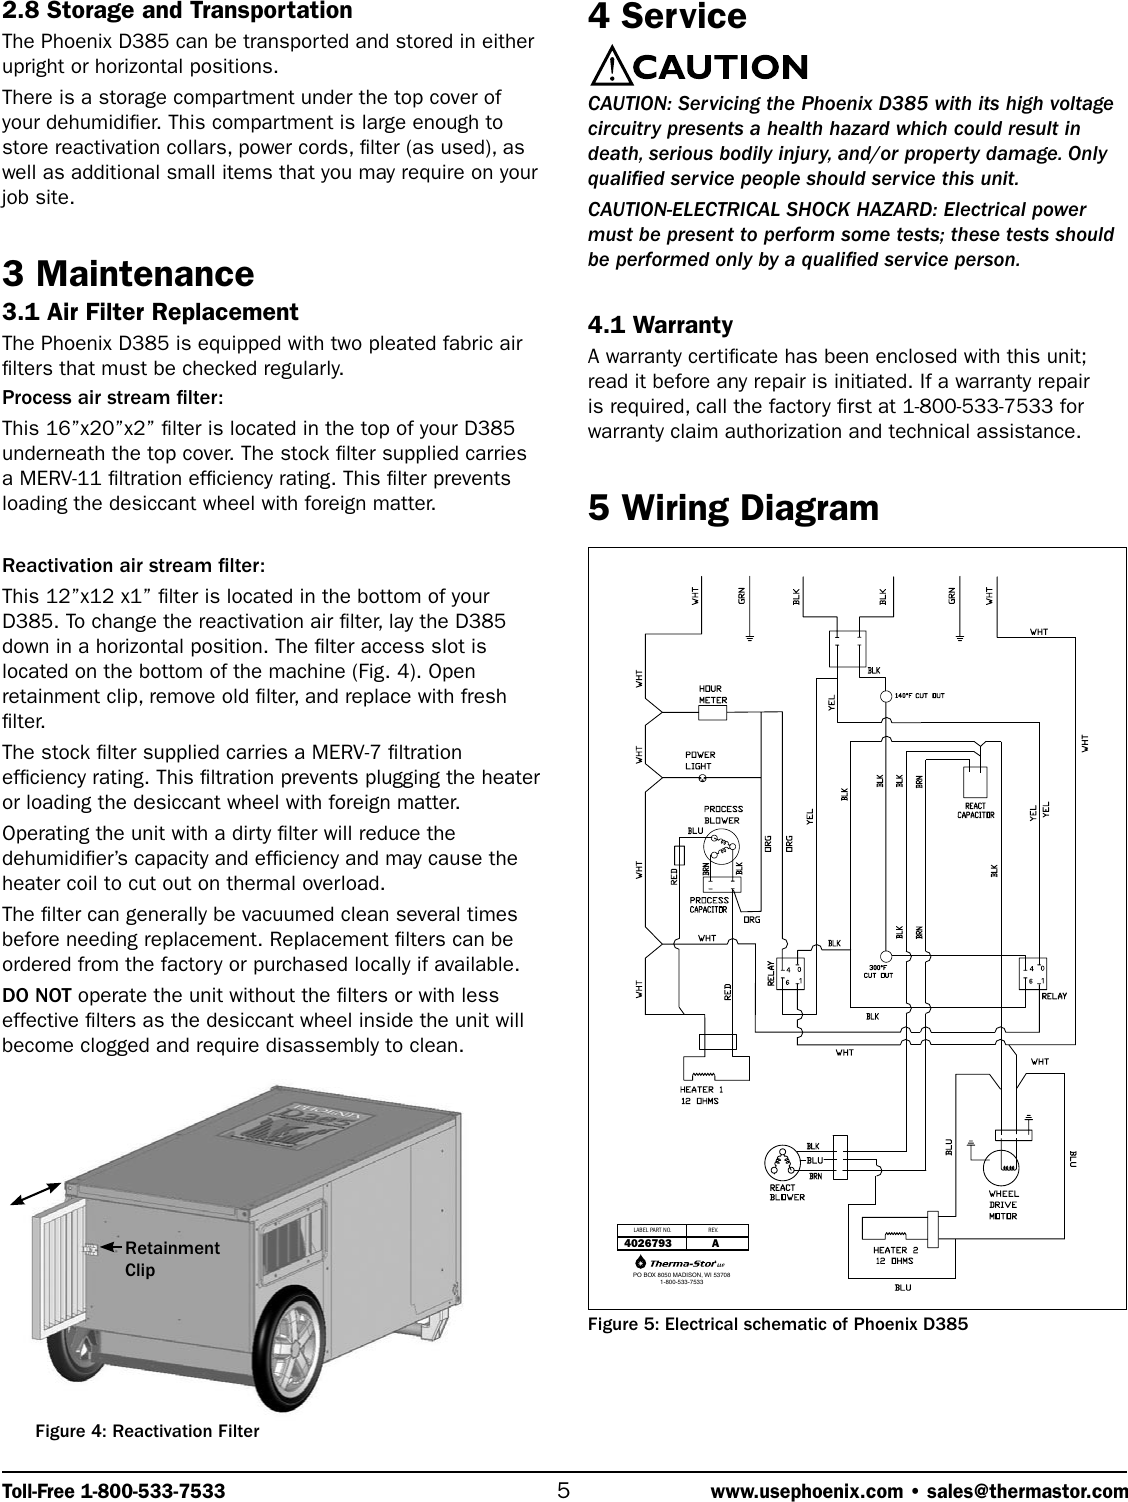 Therma Stor Products Group Phoenix D385 Users Manual Wiring Diagram Page 5 Of 7